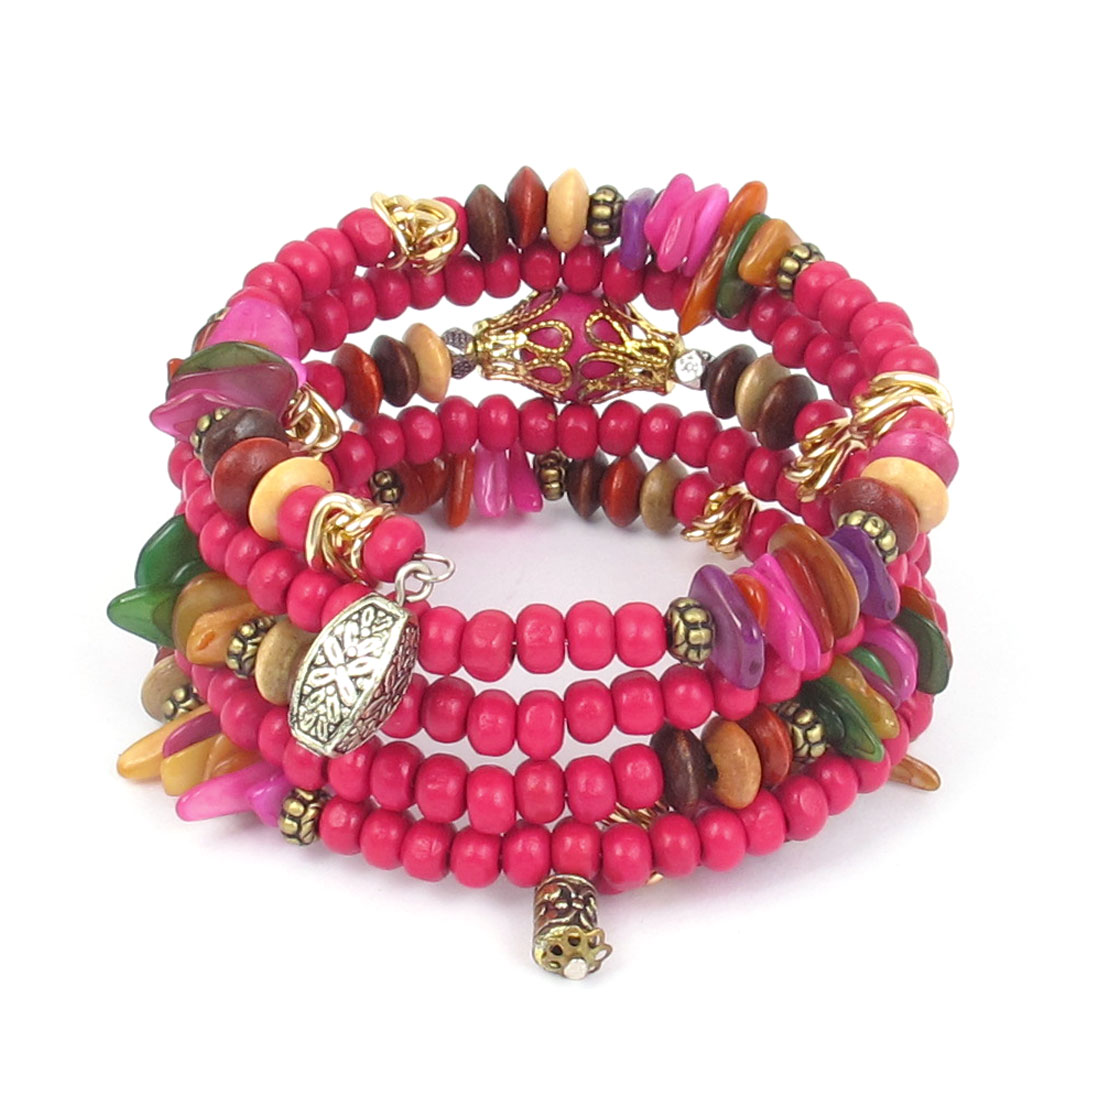 National Wind Manmade Round Wooden Beads Multilayer Wrist Ornament Bangle Bracelet Fuchsia for Lady